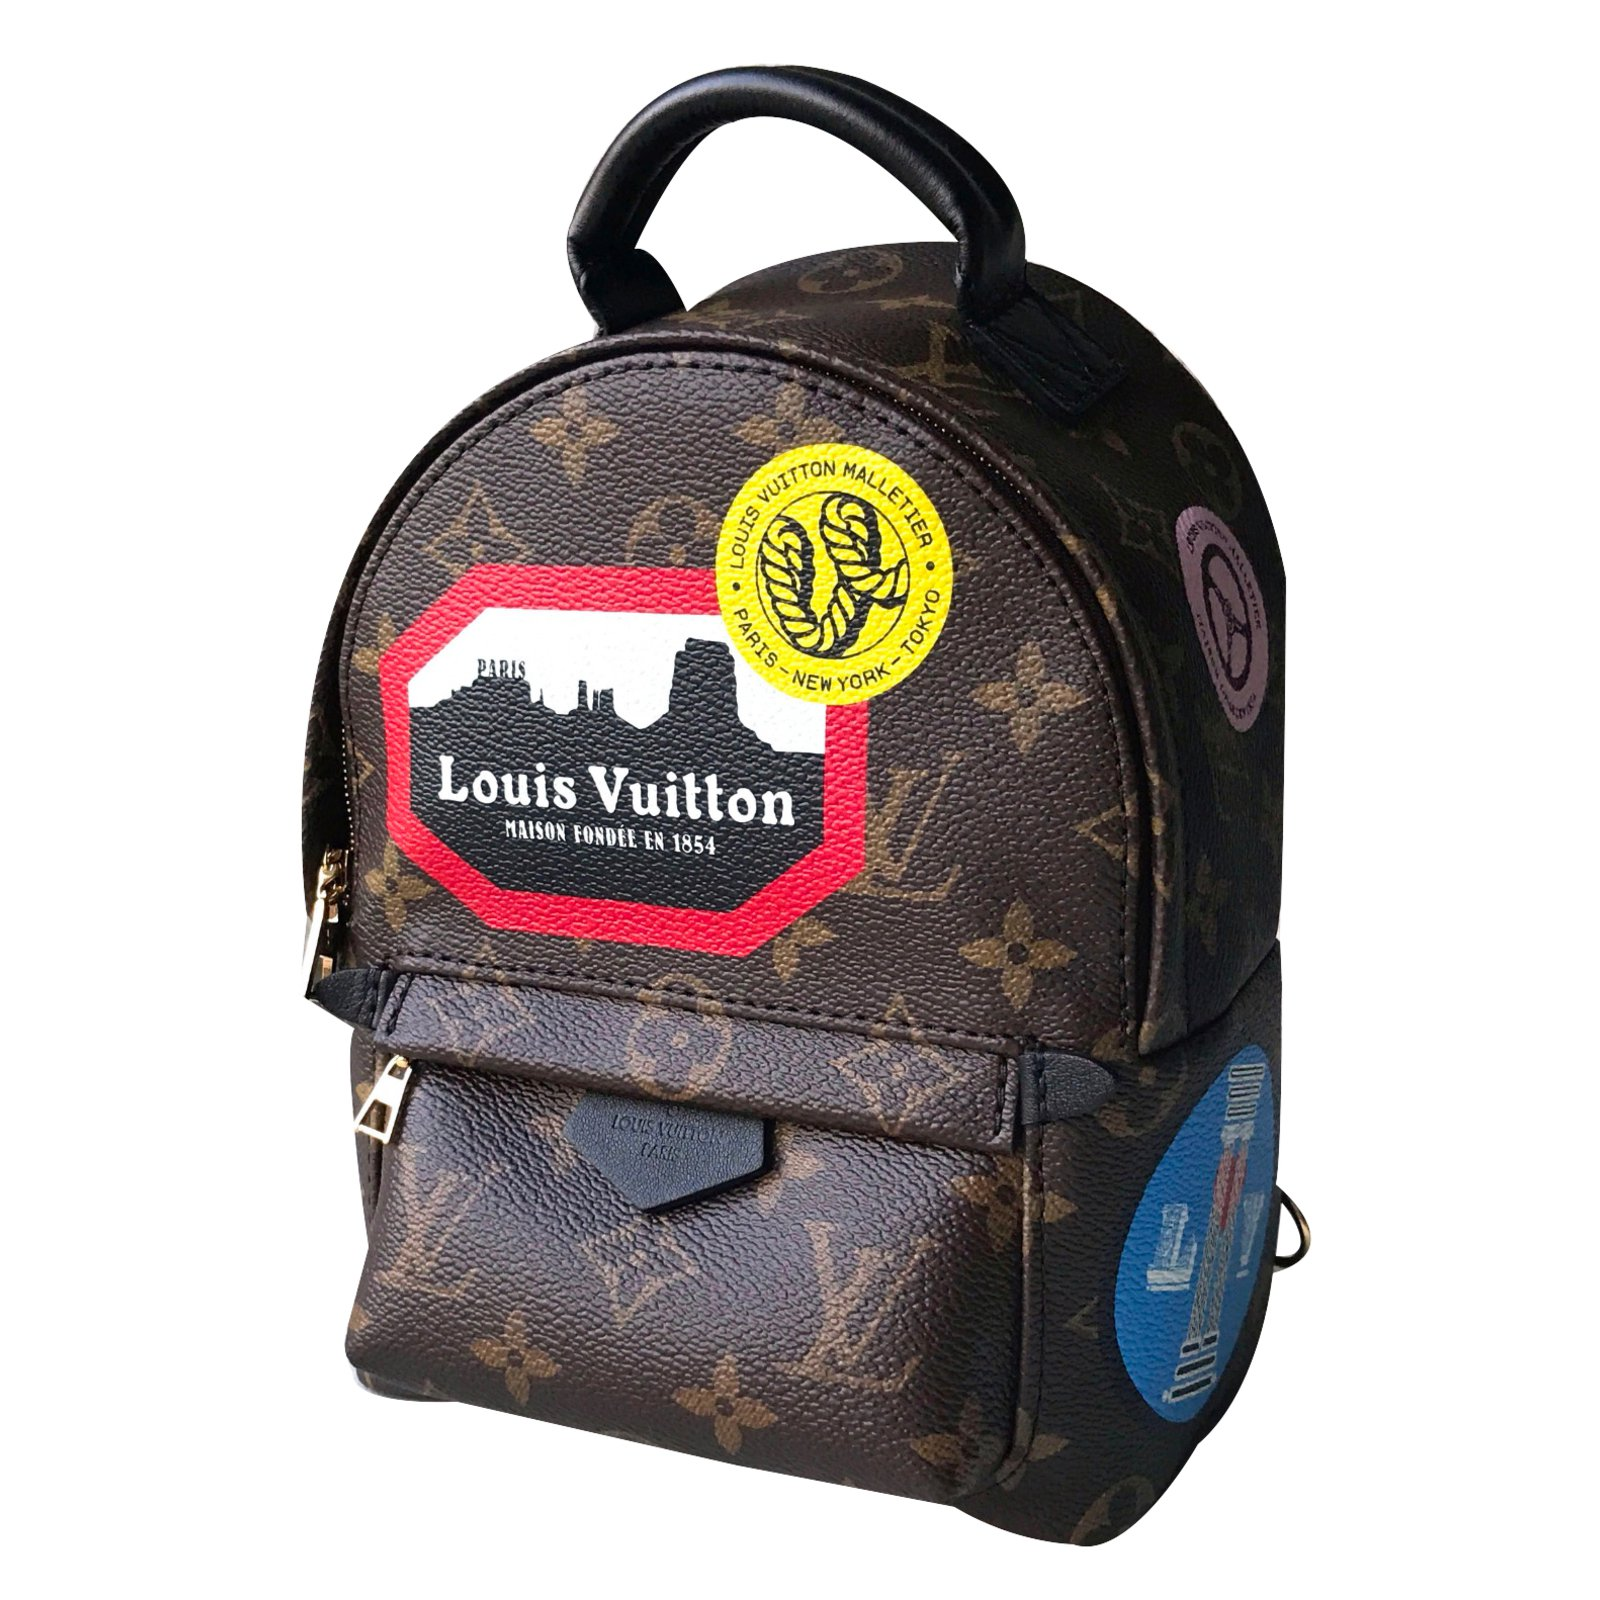 567770eb08e Louis Vuitton Small Backpack Womens - CEAGESP